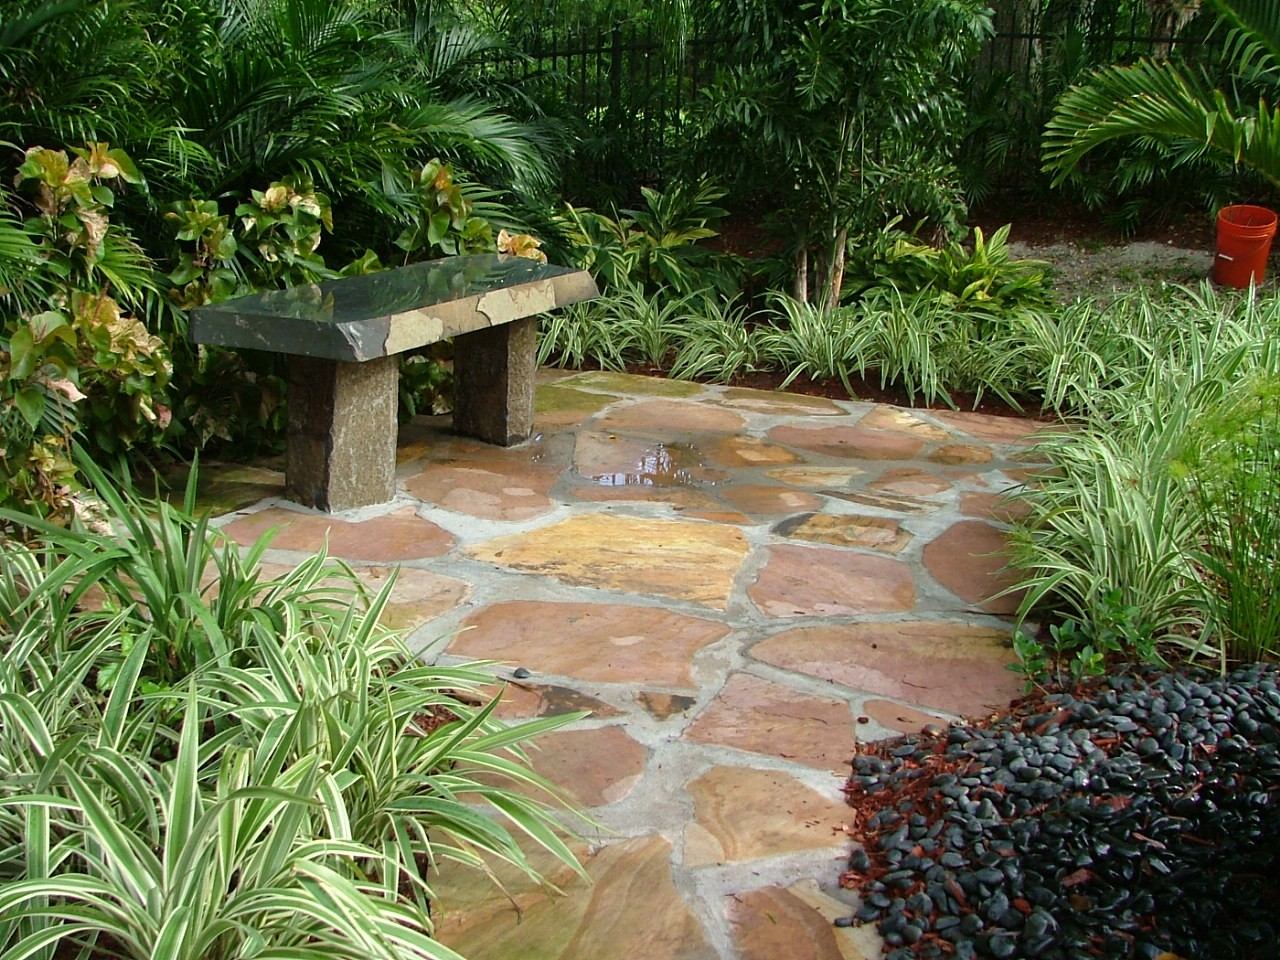 Take a seat on this bench in the outdoor living space designed by Plant Professionals.